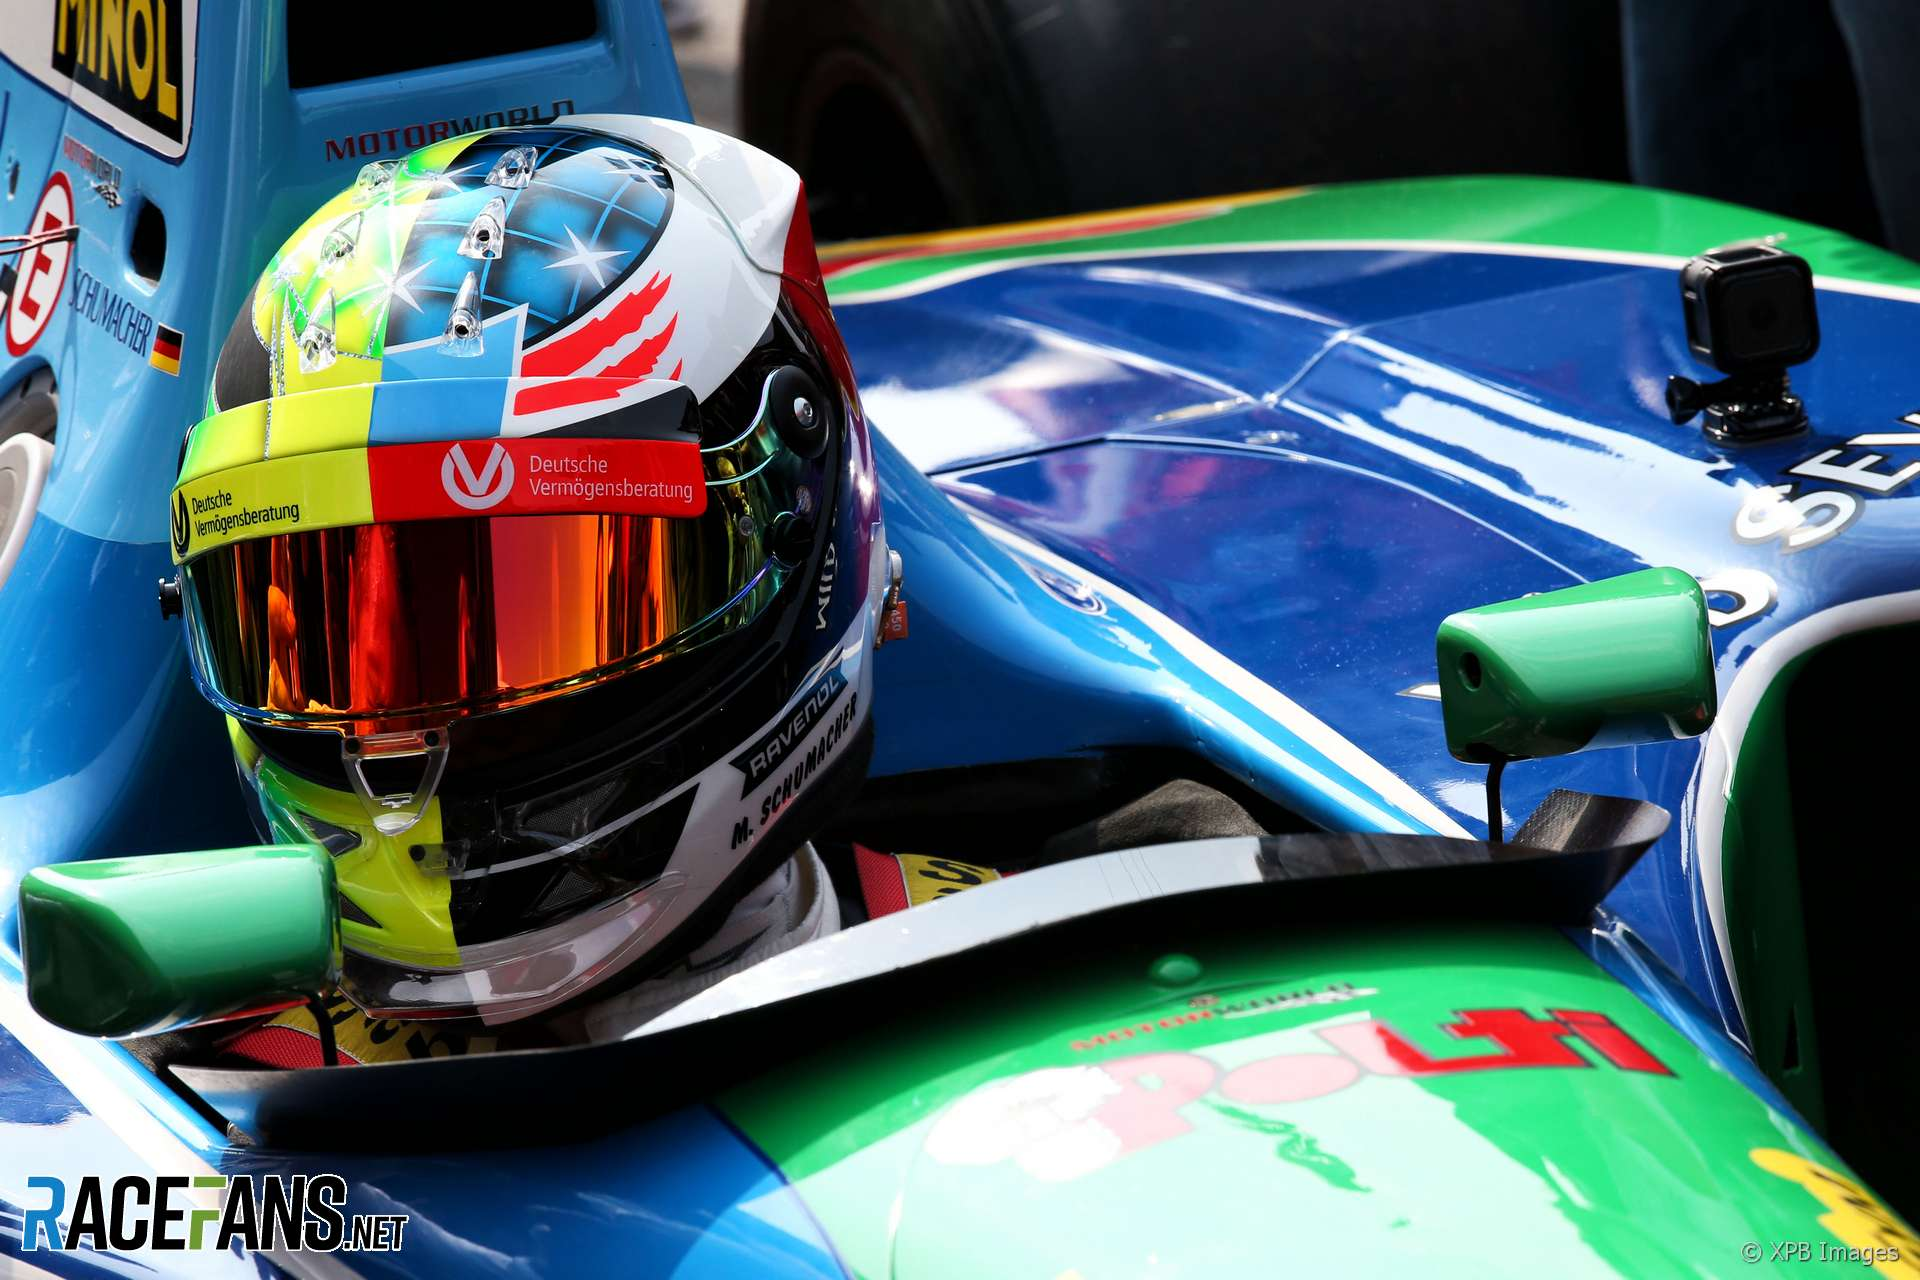 Pictures Mick Schumacher Drives His Father S Title Winning Benetton At Spa Racefans